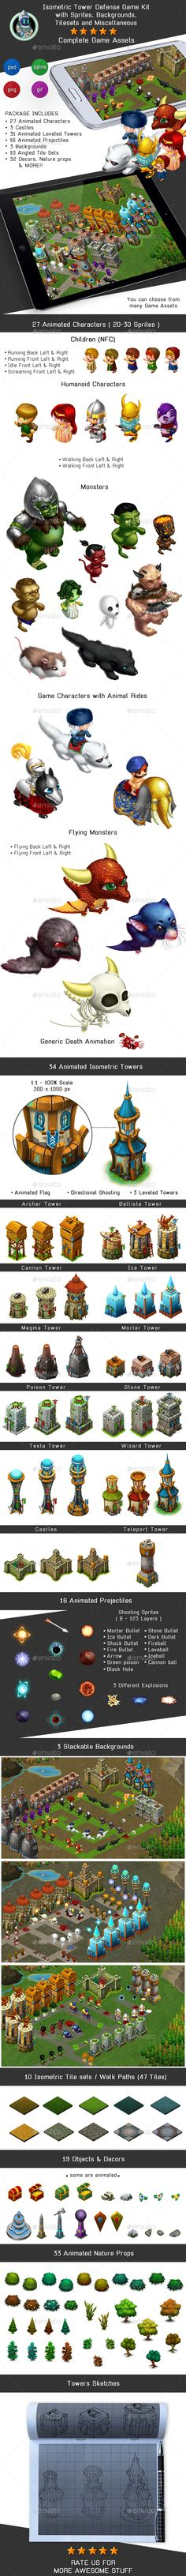 Create your own free game with this Isometric Tower Defense Game Kit containing Characters, Sprites, Backgrounds, Tilesets and Miscellaneous  These Isometric Game Assets are for all game developers, new or experienced. Can be used to create or develop a game in any game engine, such as Game Maker, Unity, Gamesalad, Stencyl, Construct, Buildbox, RPG Maker, V play, Marmalade, Flash, Java, HTML and more